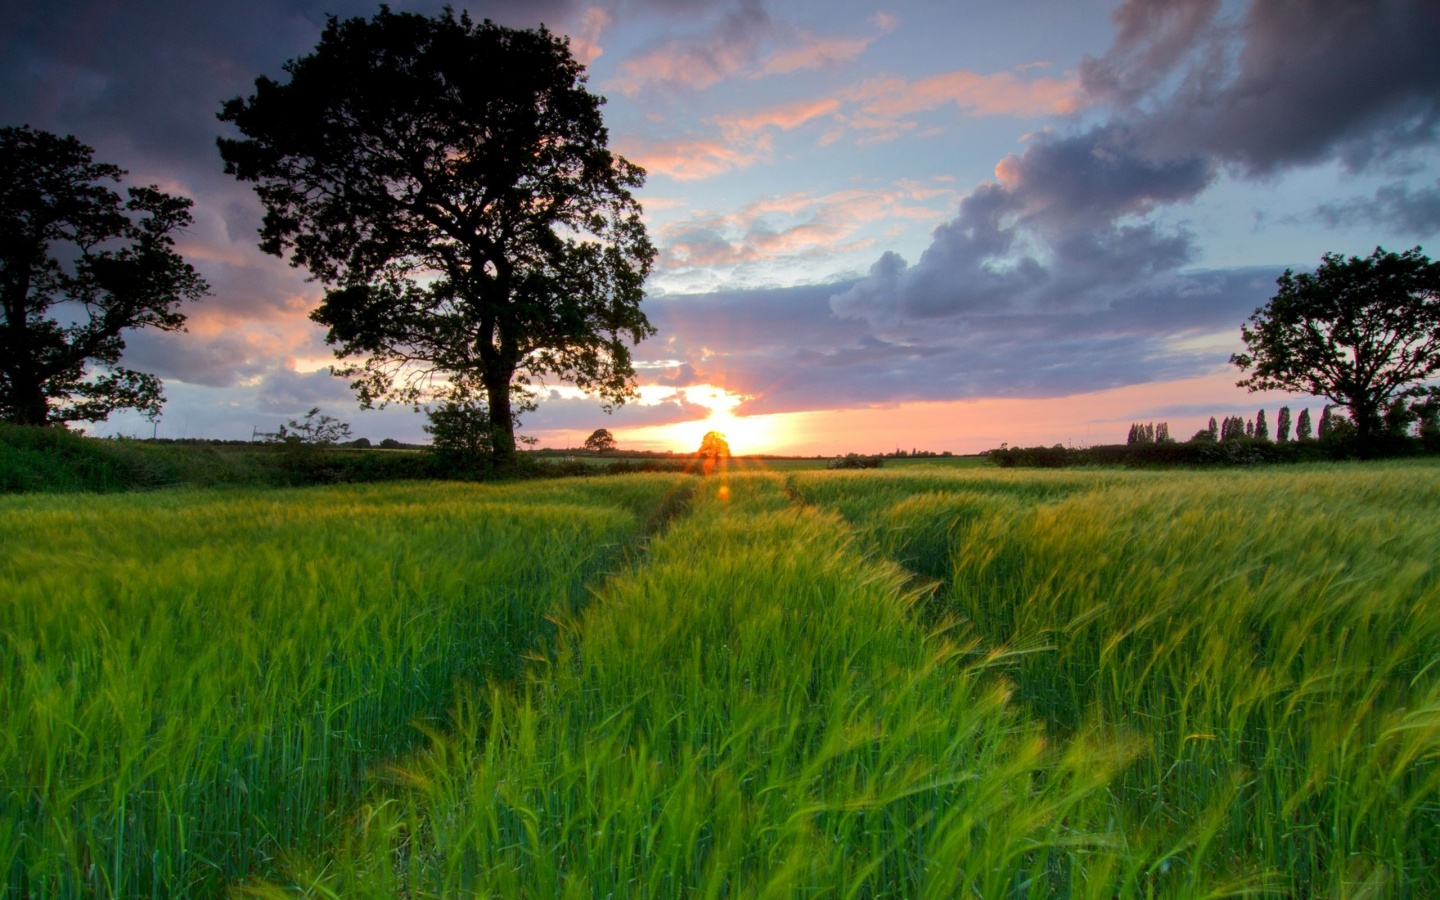 Sunset Over A Grass Field